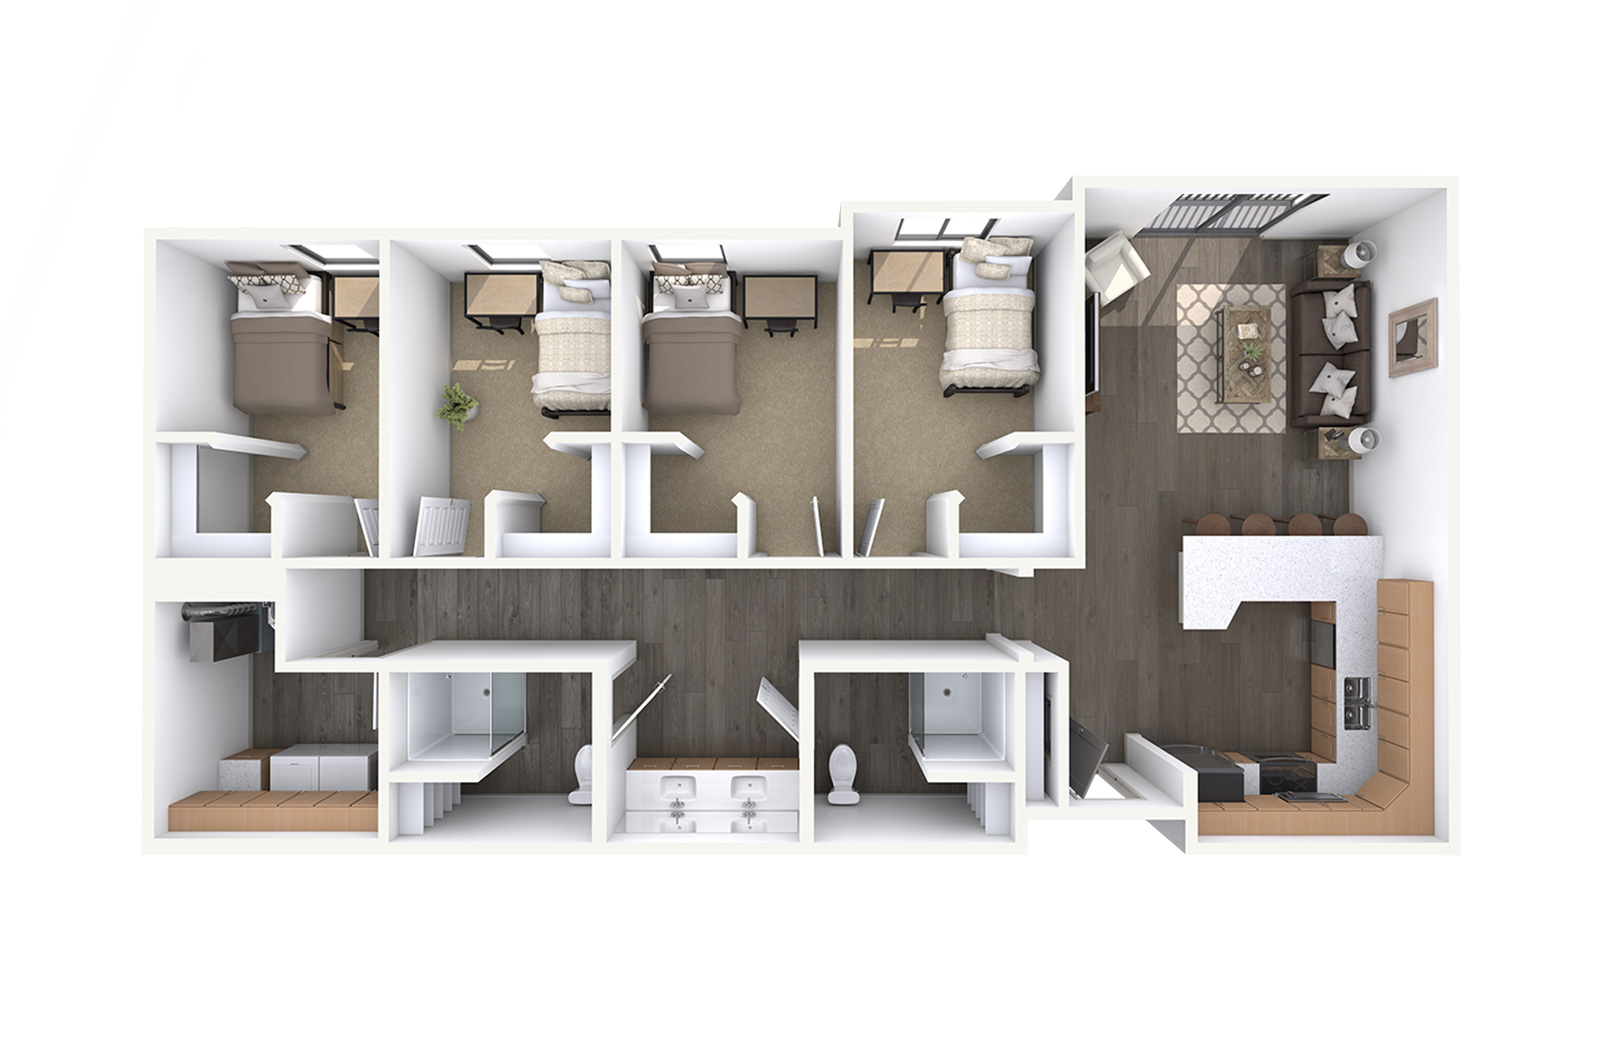 Orem Student Housing Floor Plans